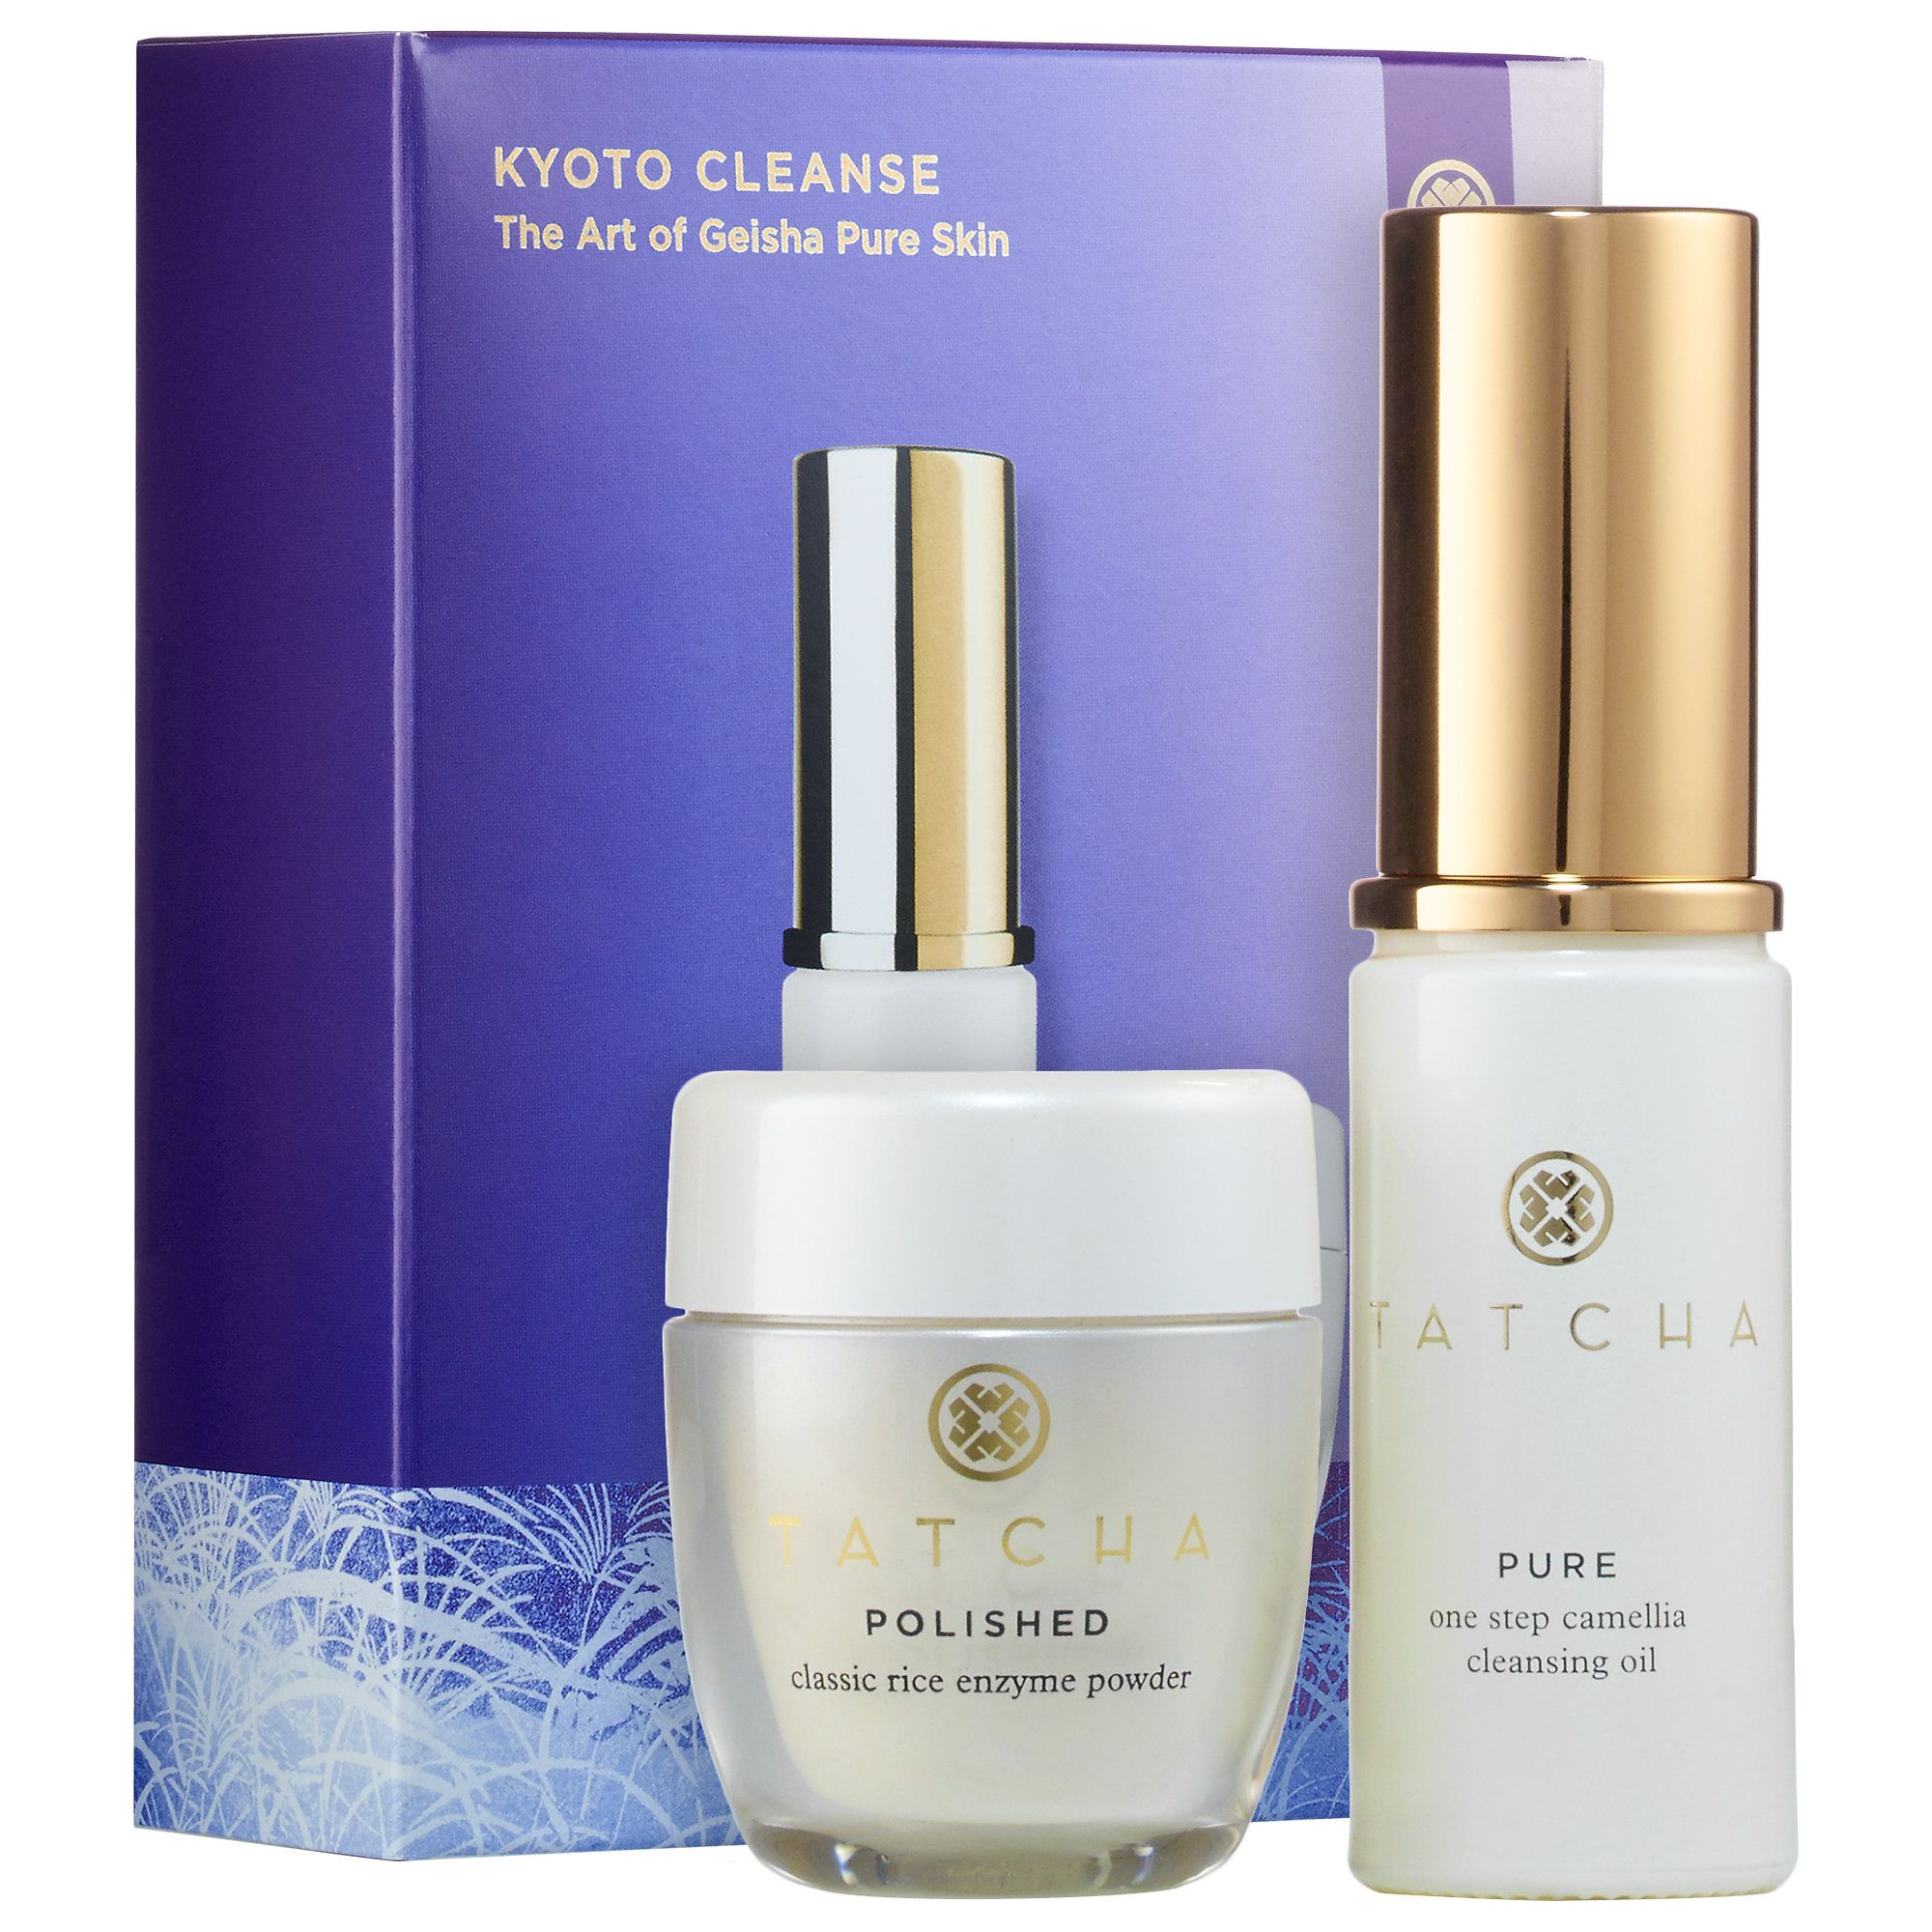 Shop Tatchaus Kyoto Cleanse at Sephora This cleansing and